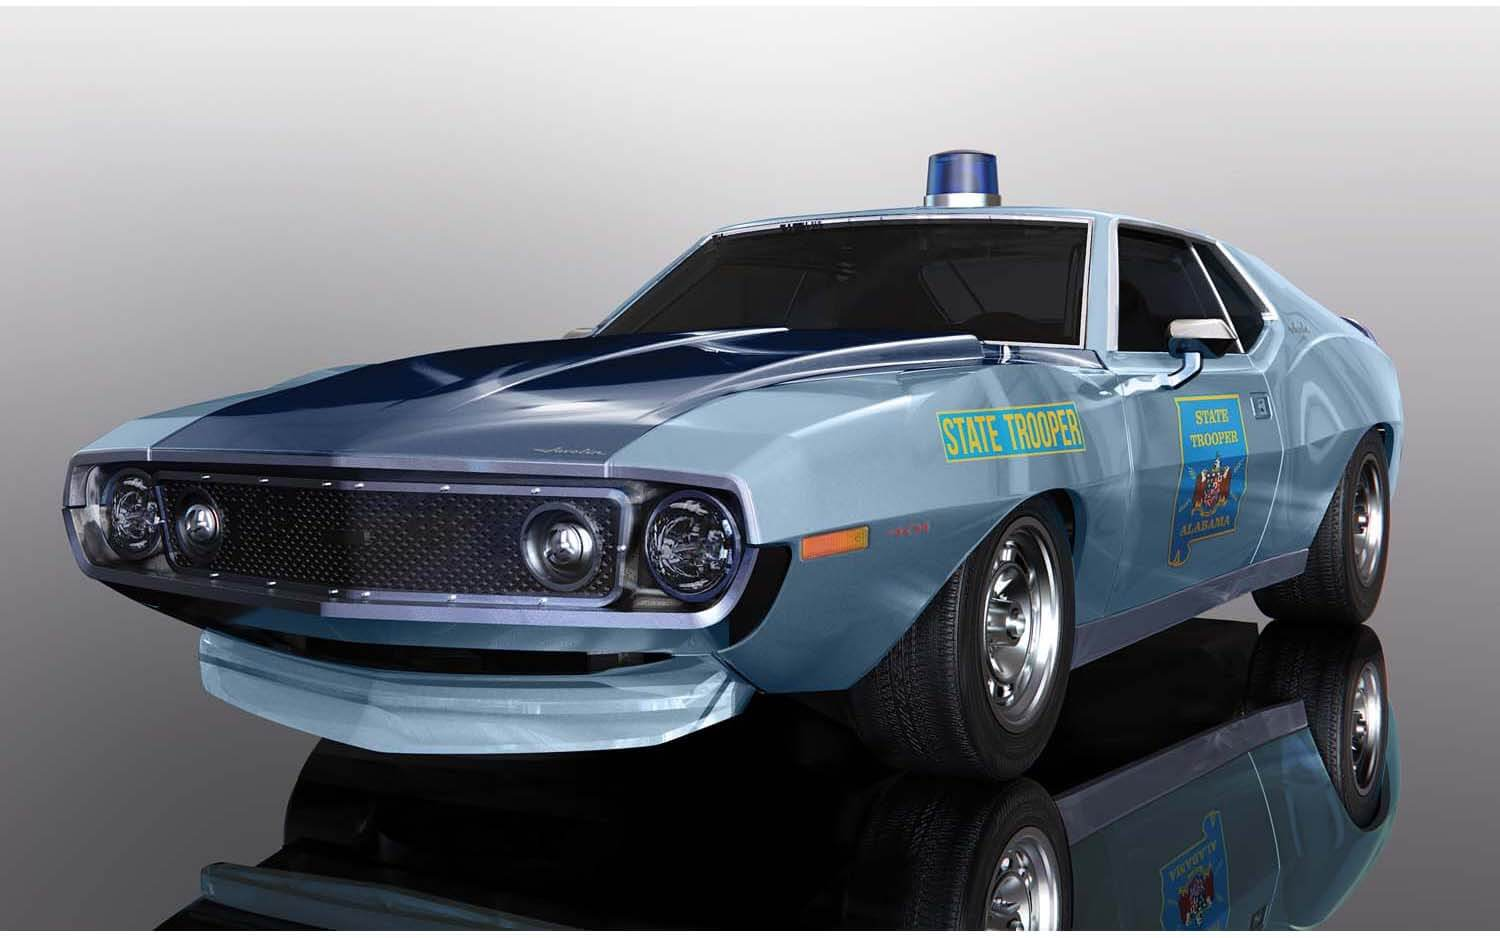 C4058 Scalextric AMC Javelin Alabama State Trooper